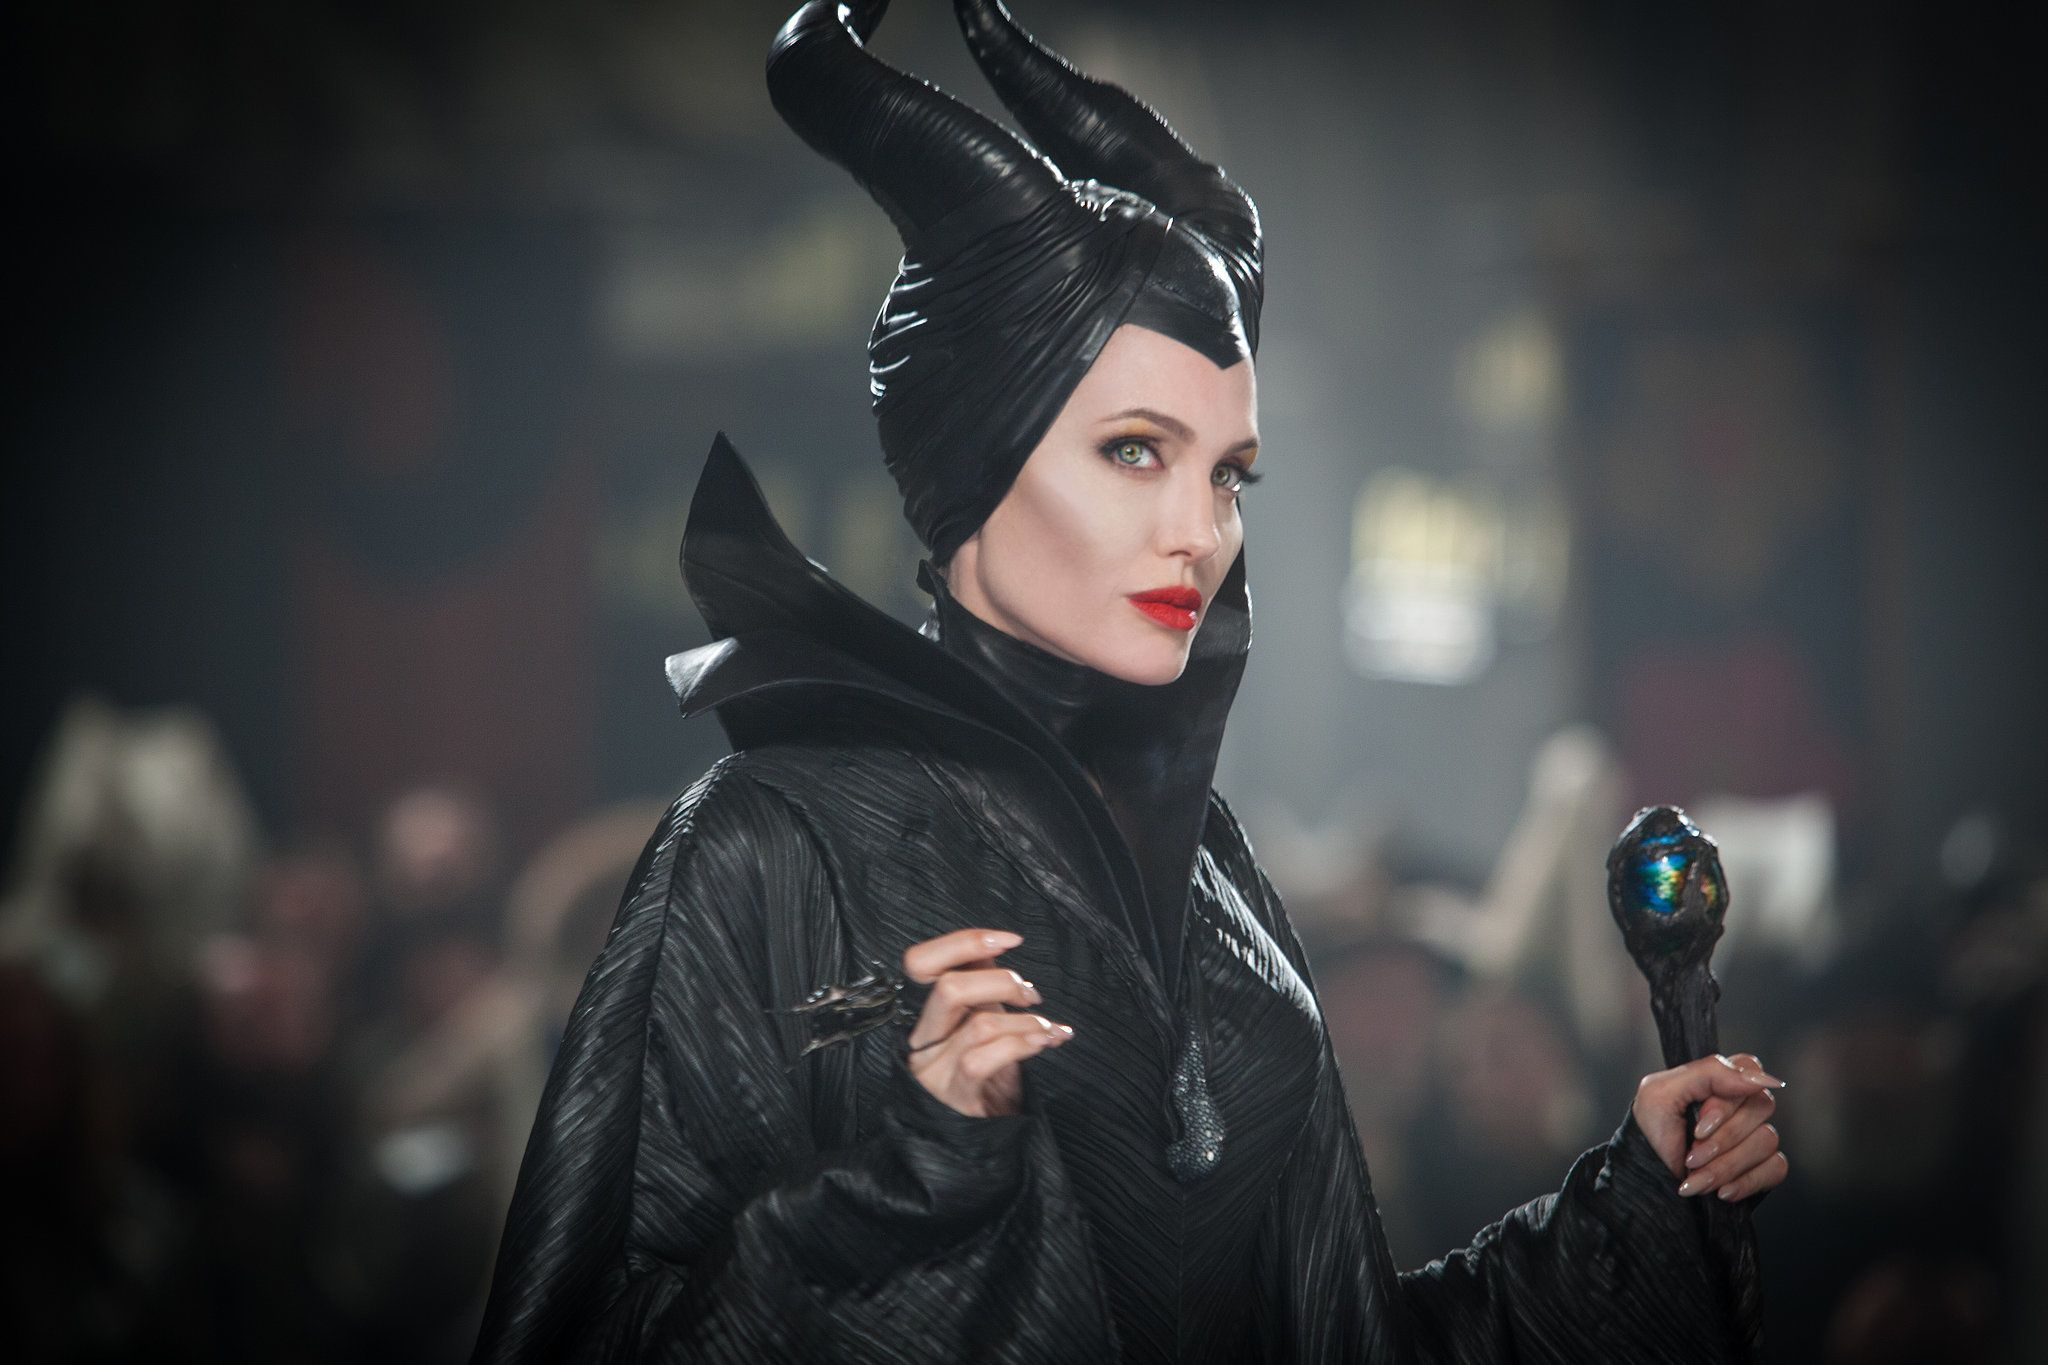 What to wear: A black turtleneck with a cape and big collar. The horns might take some papier-maché, but they're necessary. You need a cool staff, of course.  How to act: Mysterious and just a little evil. Whip out your red-lipsticked smile only to make a point.